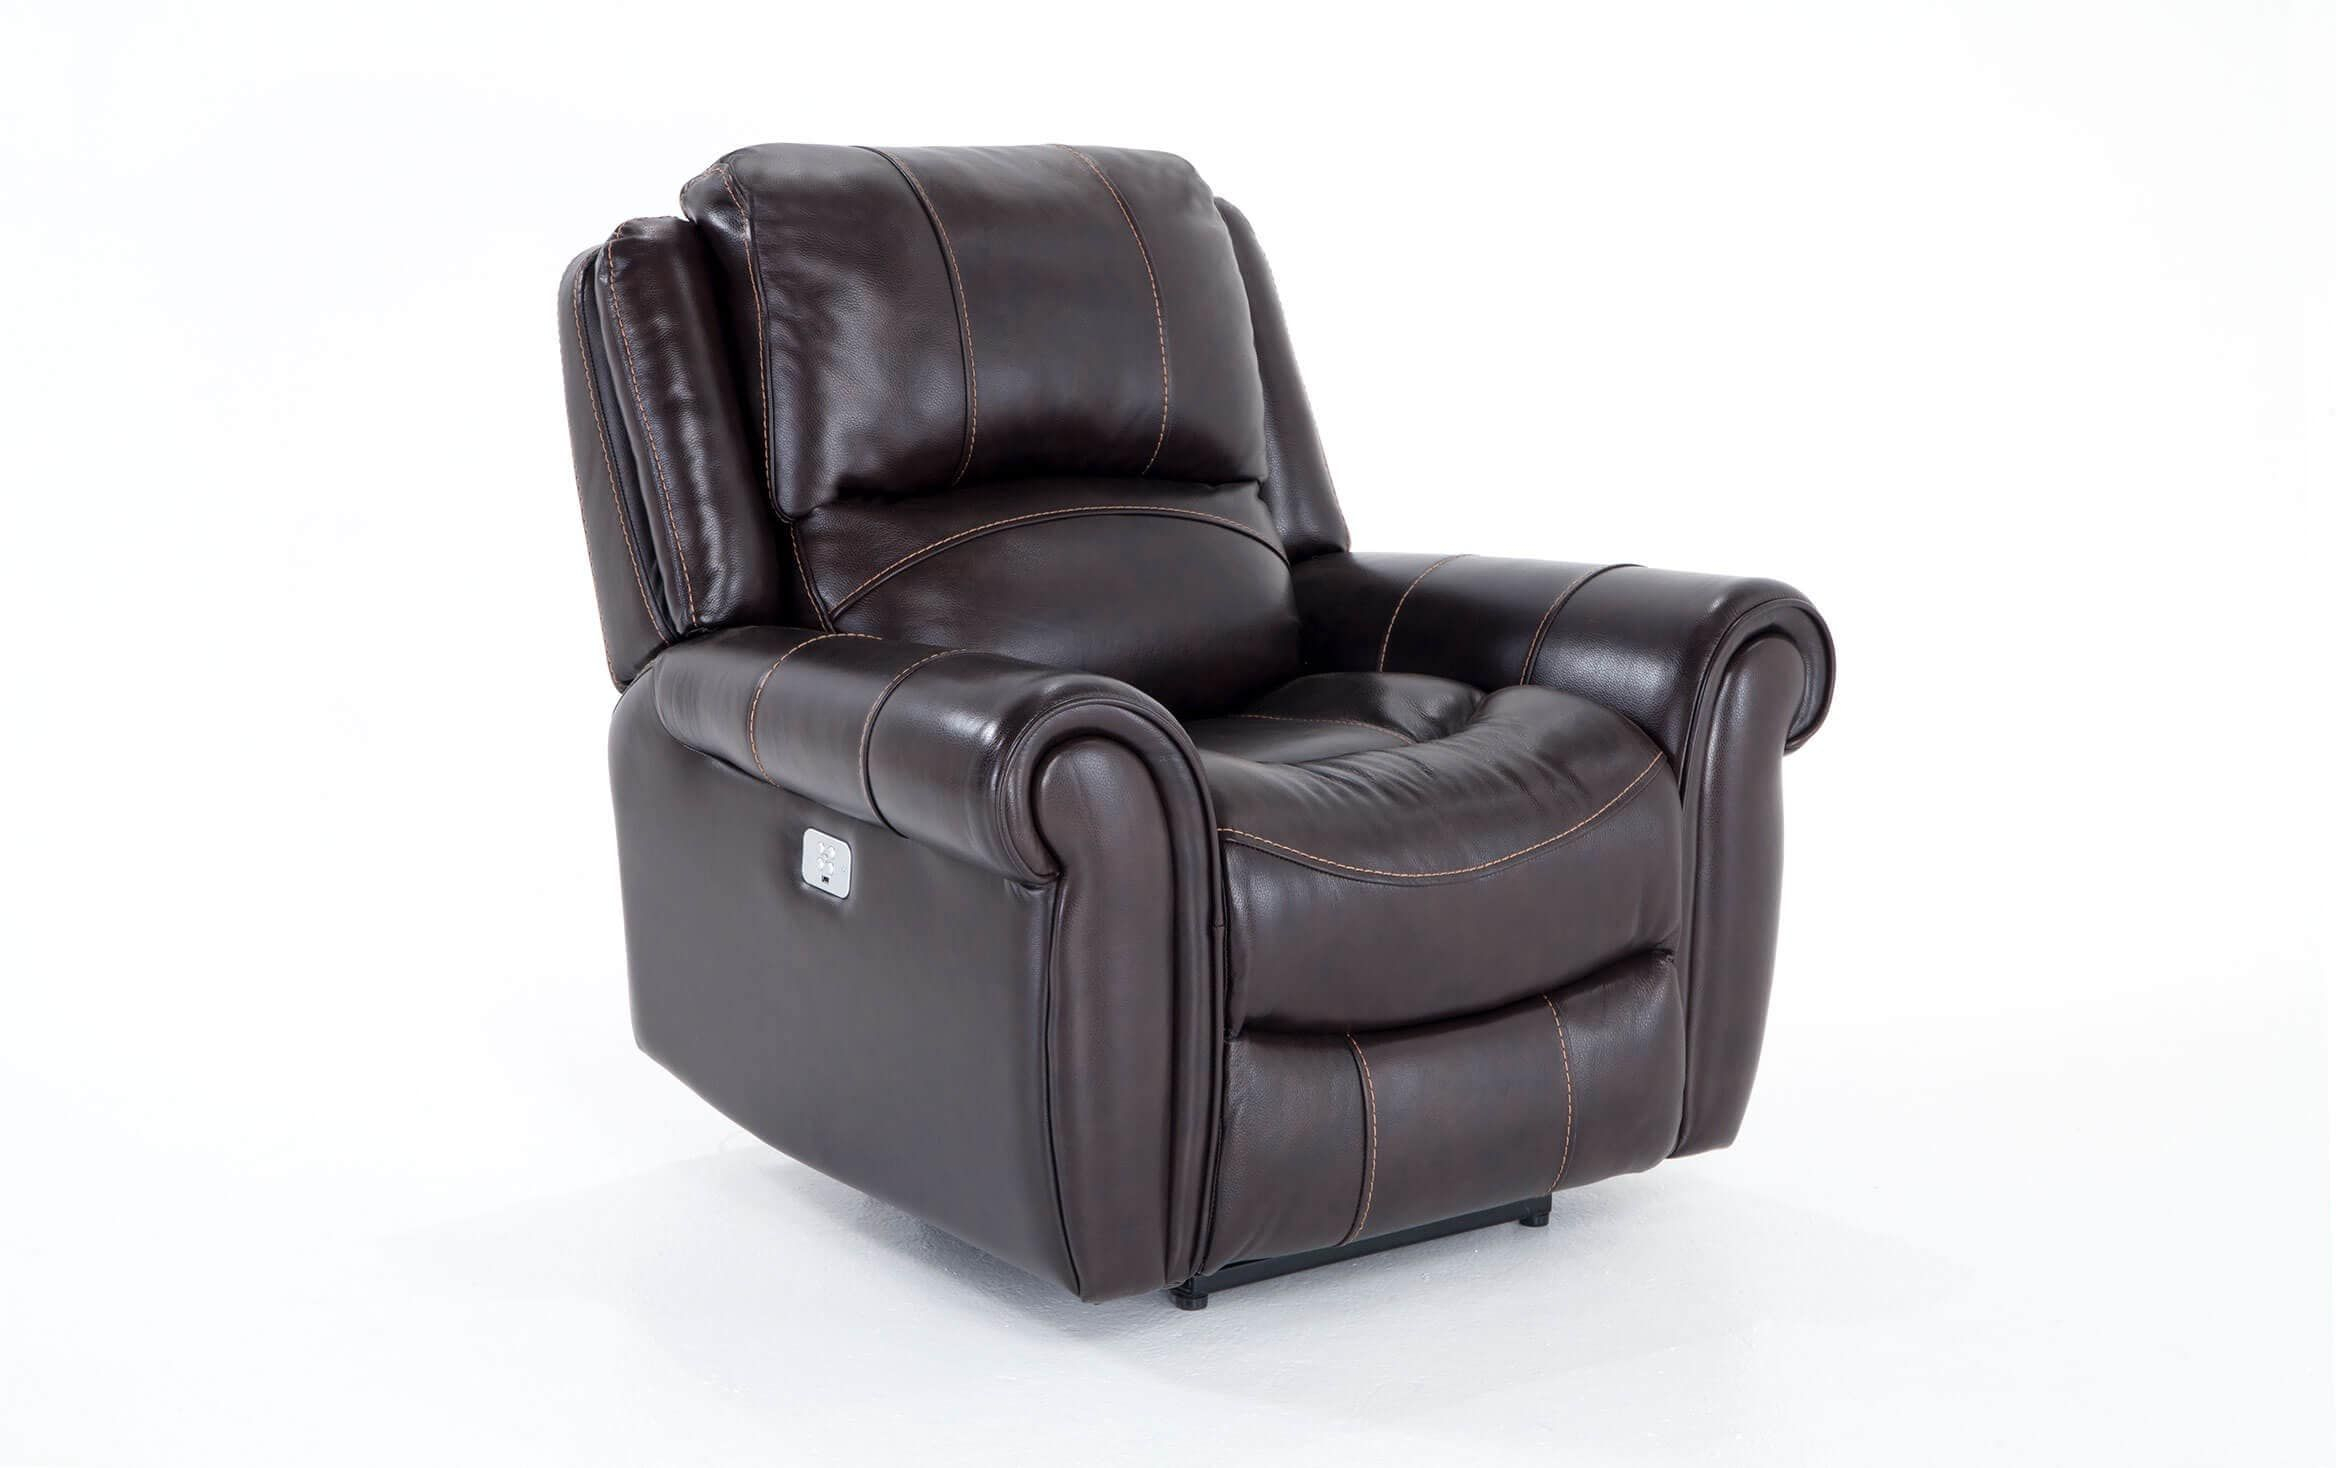 Bennett Leather Power Recliner In 2020 | Power Recliners With Regard To Bennett Power Reclining Sofas (View 6 of 15)